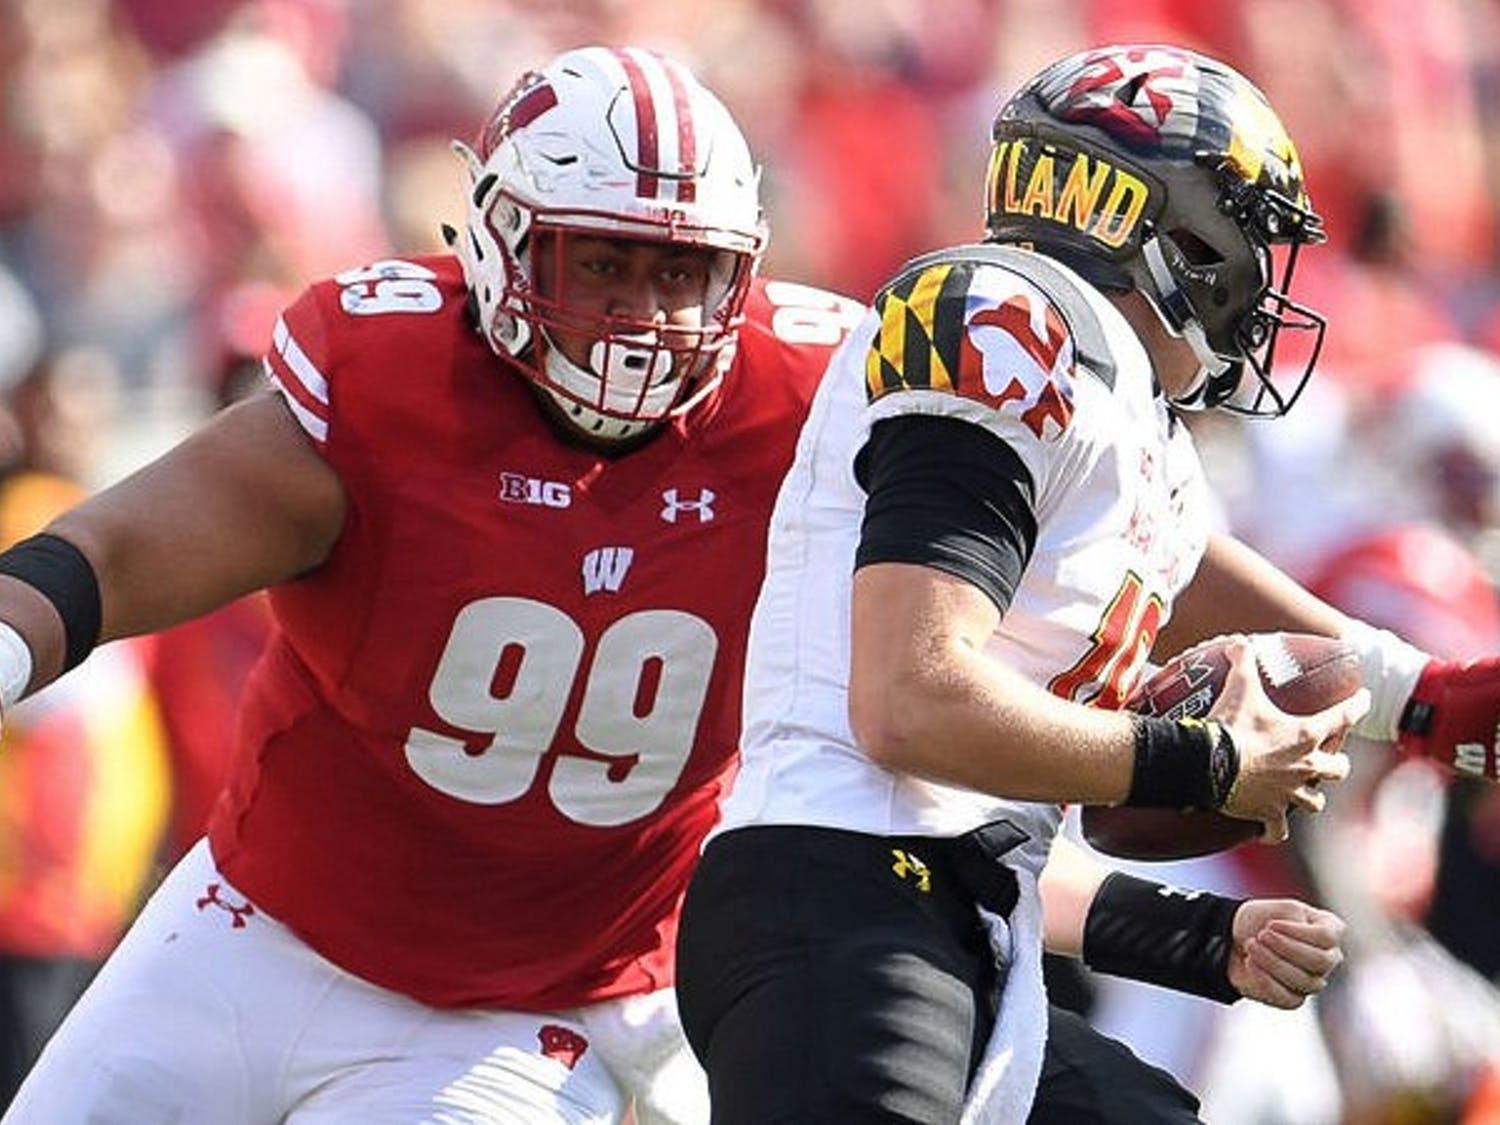 Senior nose tackle Olive Sagapolu waslisted out for the season before Wisconsin's game before No. 21Penn State. Junior quarterback Alex Hornibrook is questionable after being in concussion protocol.